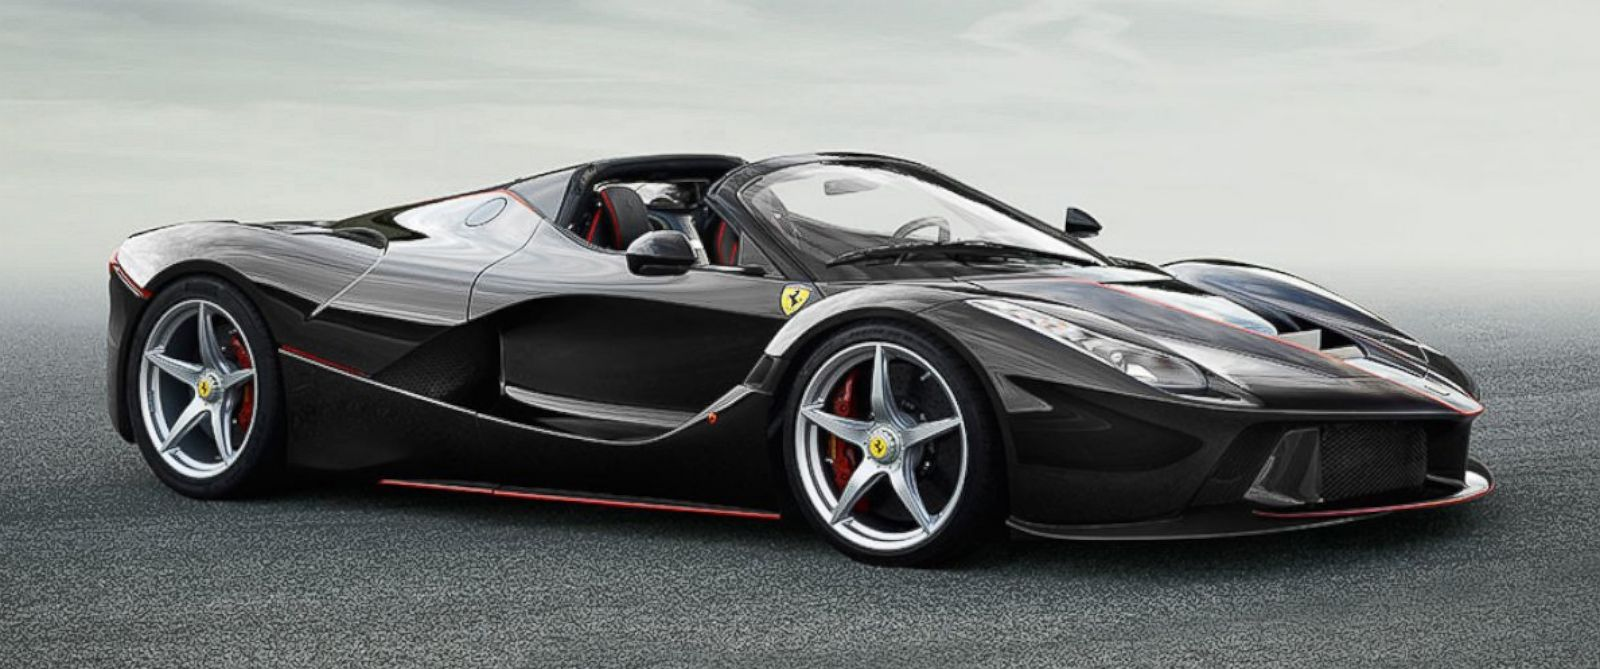 ferrari collector sues luxury automaker for denying him new model abc news. Cars Review. Best American Auto & Cars Review